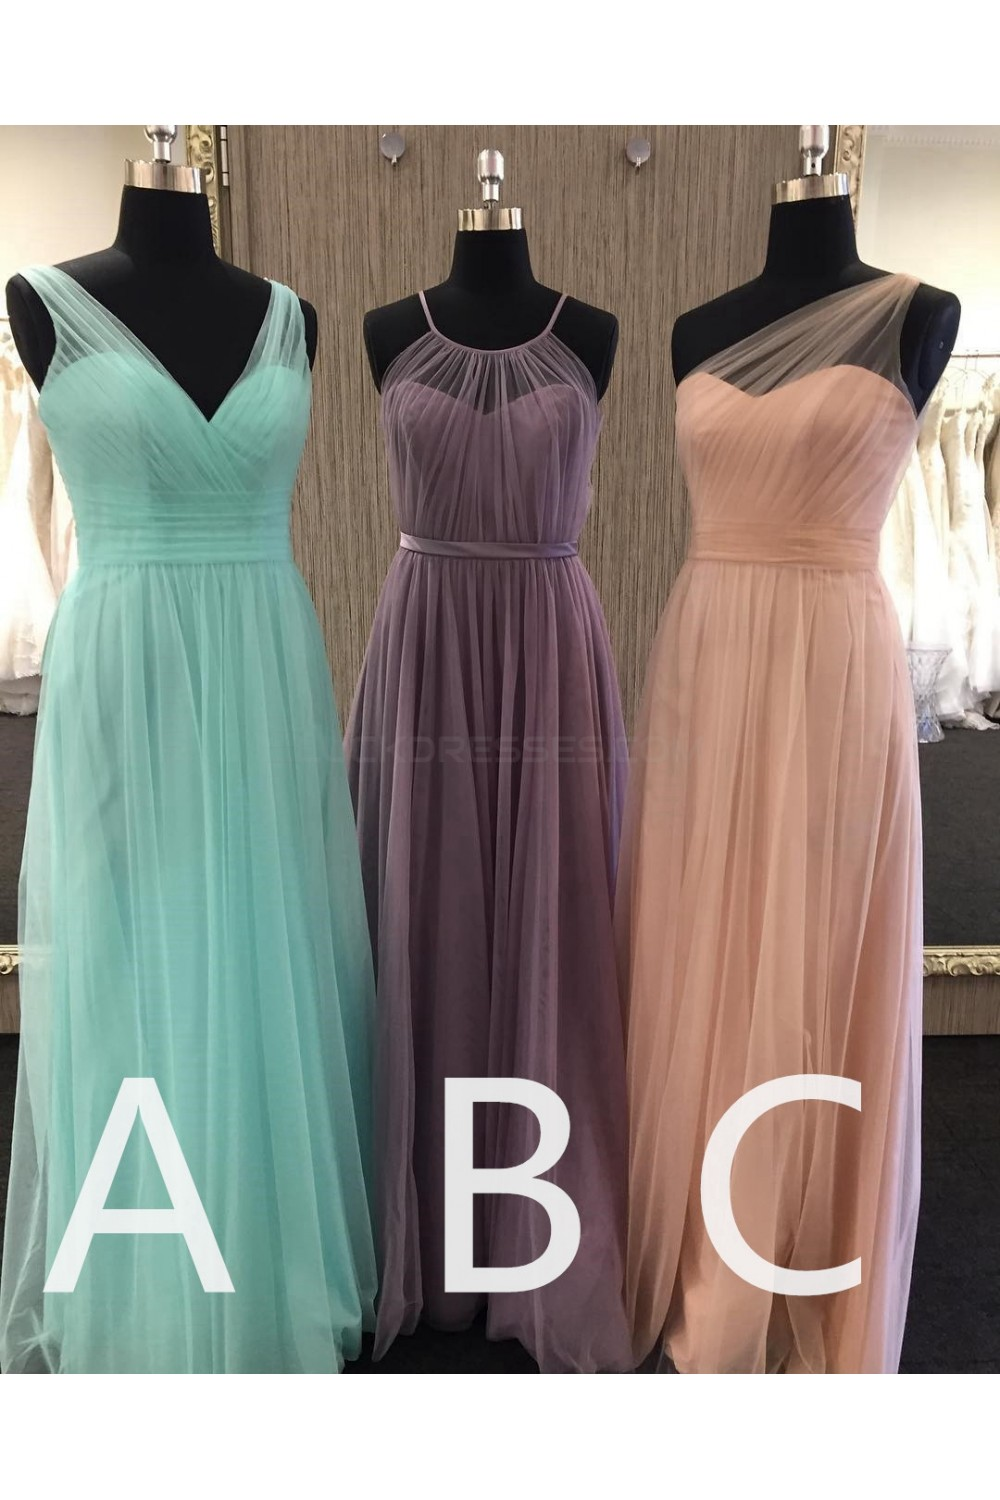 long dresses for wedding guests tulle wedding guest dresses bridesmaid dresses 3010263 5580